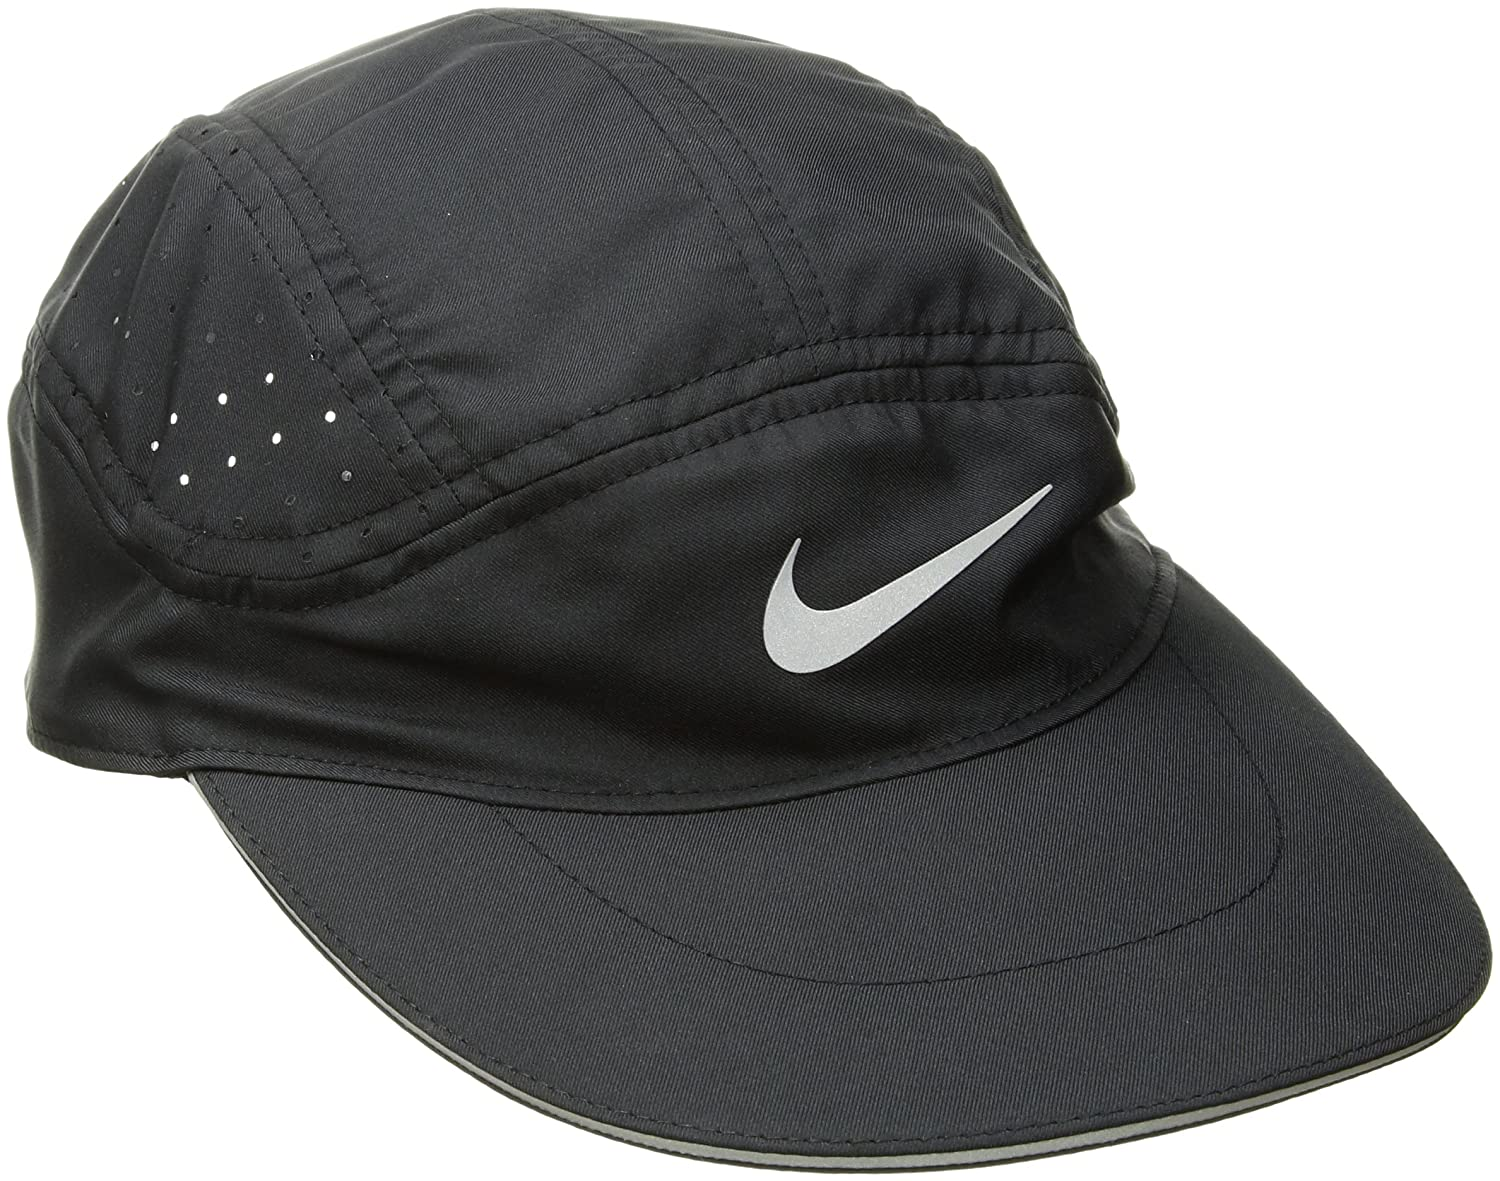 e1a19890b2a71 Amazon.com  Nike Mens Aerobill TW Elite Running Hat Black Black 828617-010   Sports   Outdoors